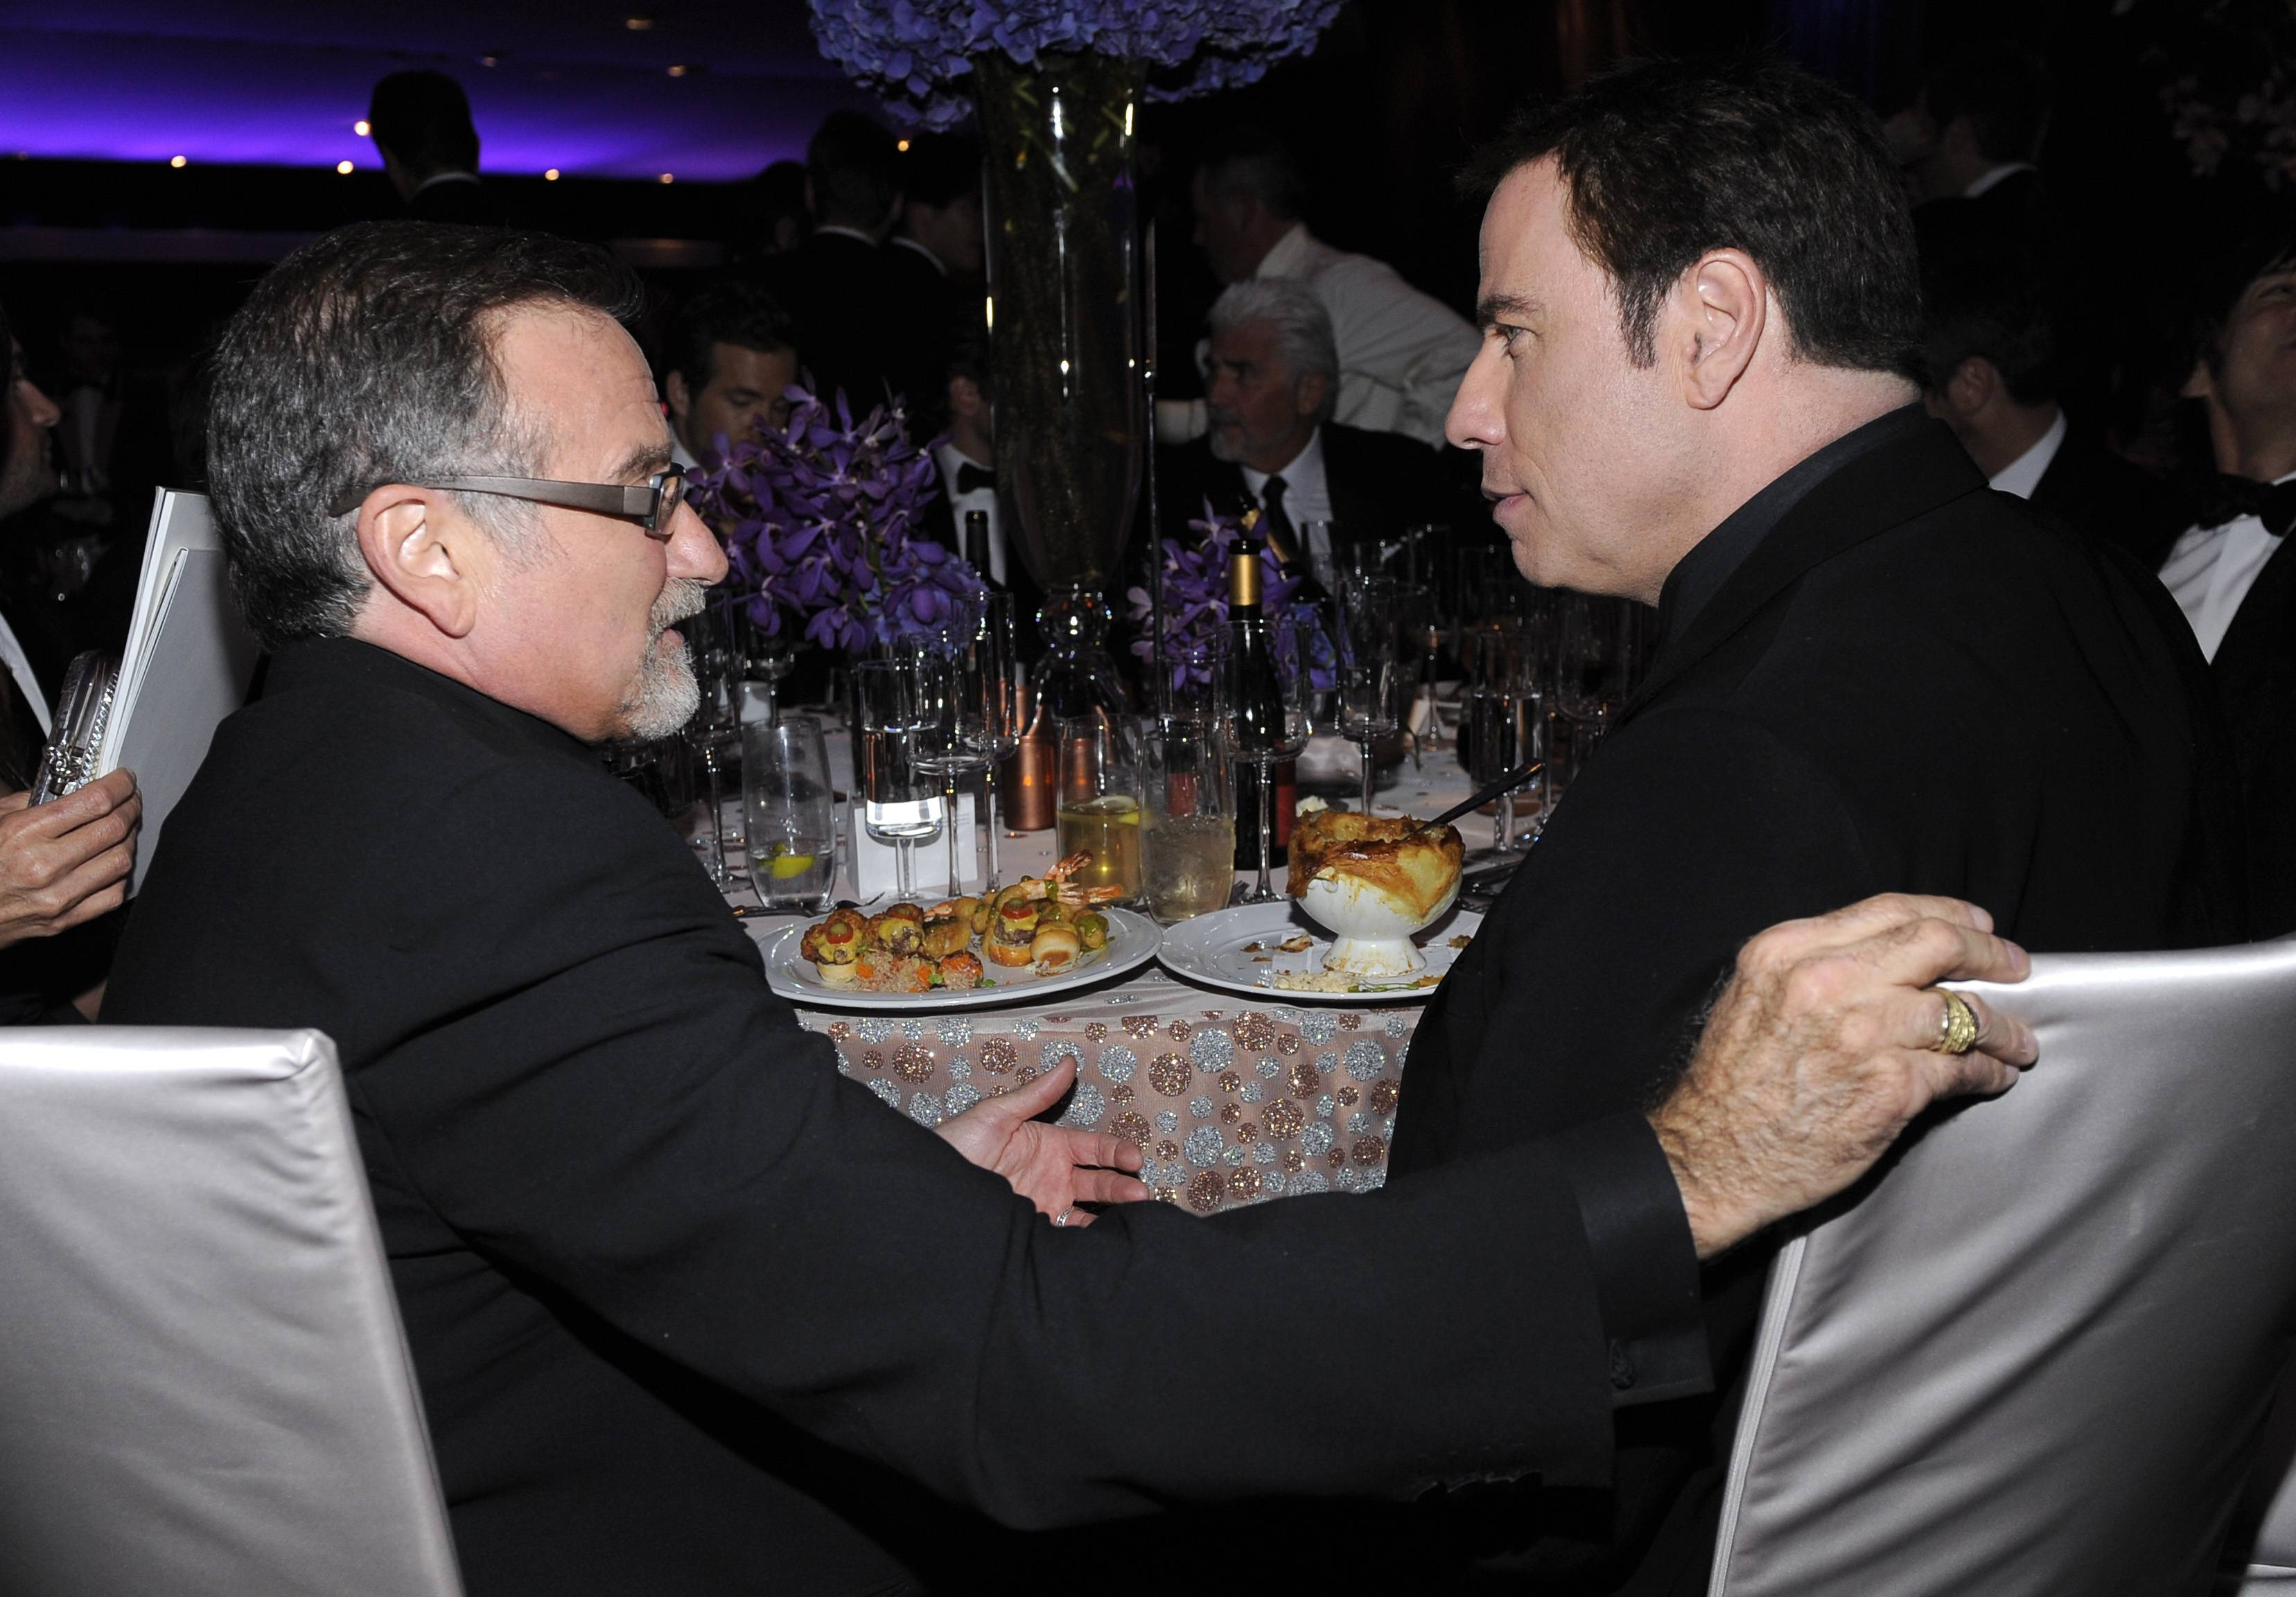 Robin Williams, left, and John Travolta at the Governors Ball on March 7, 2010, following the the 82nd Academy Awards.